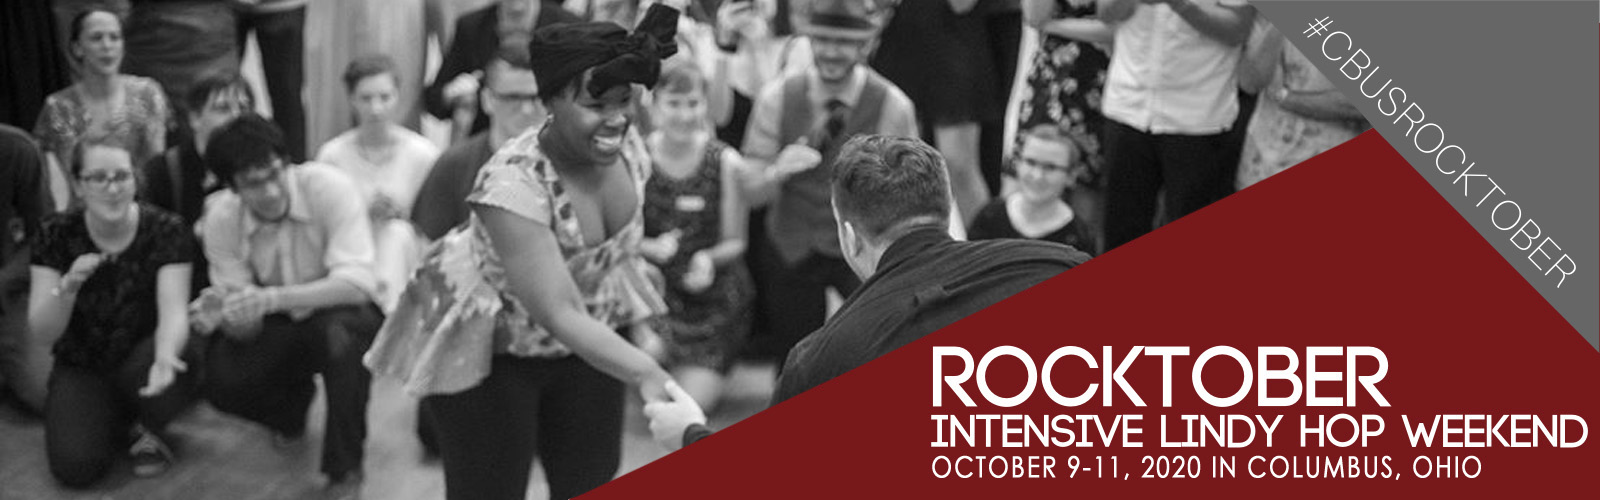 Rocktober Intensive Lindy Hop Weekend